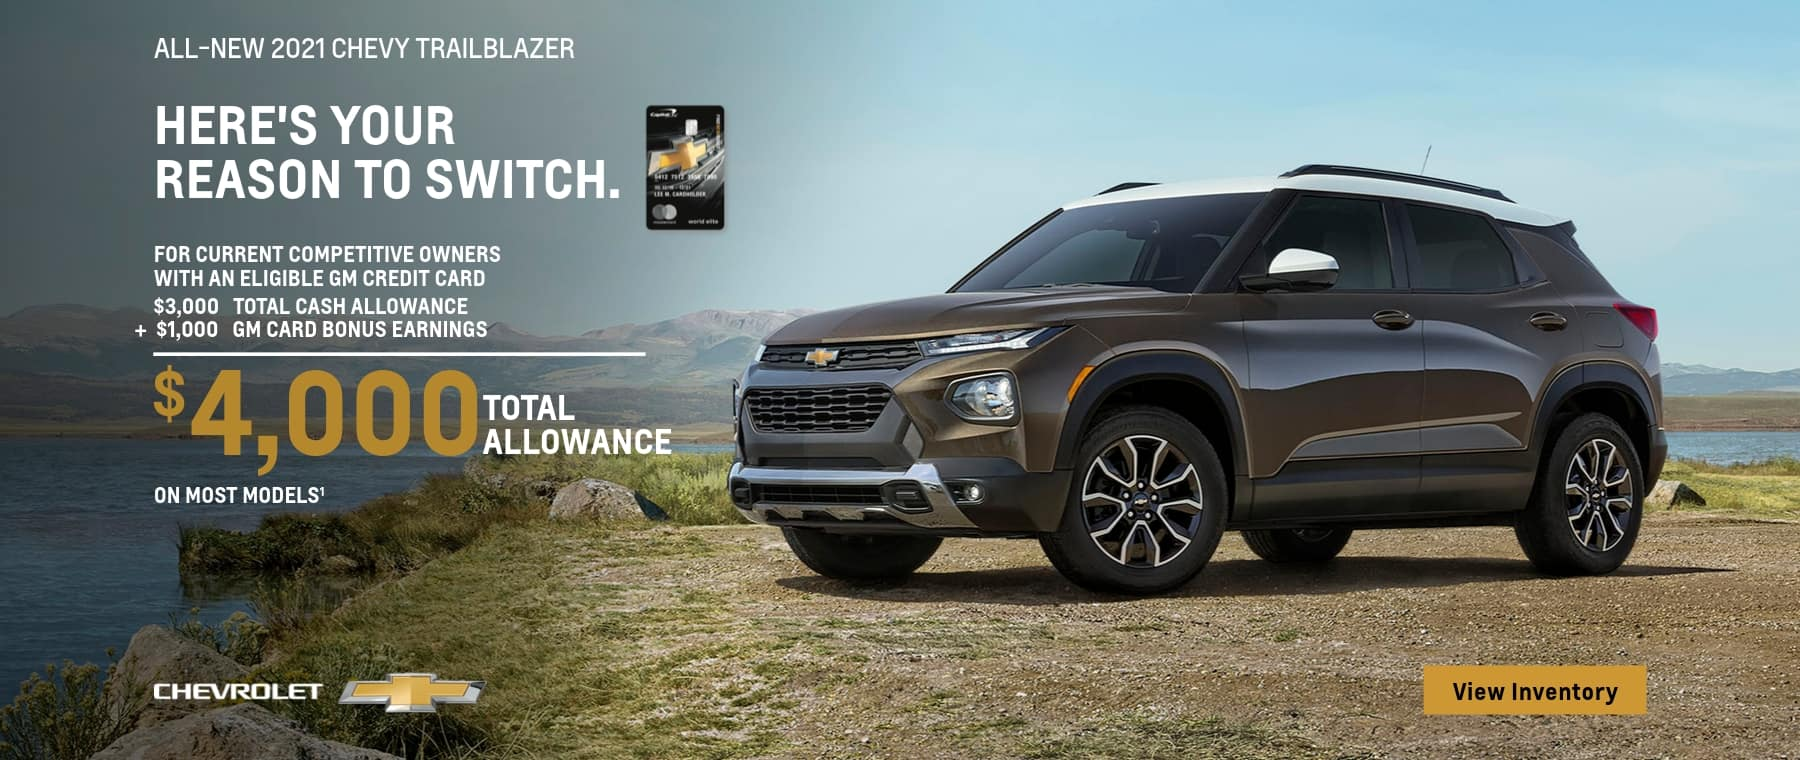 all-new 2021 chevy trailblazer for current competitive owners with an eligible gm credit card $3,000 total cash allowance + $1,000 gm card bonus earnings chevrolet total allowance view inventory on most models